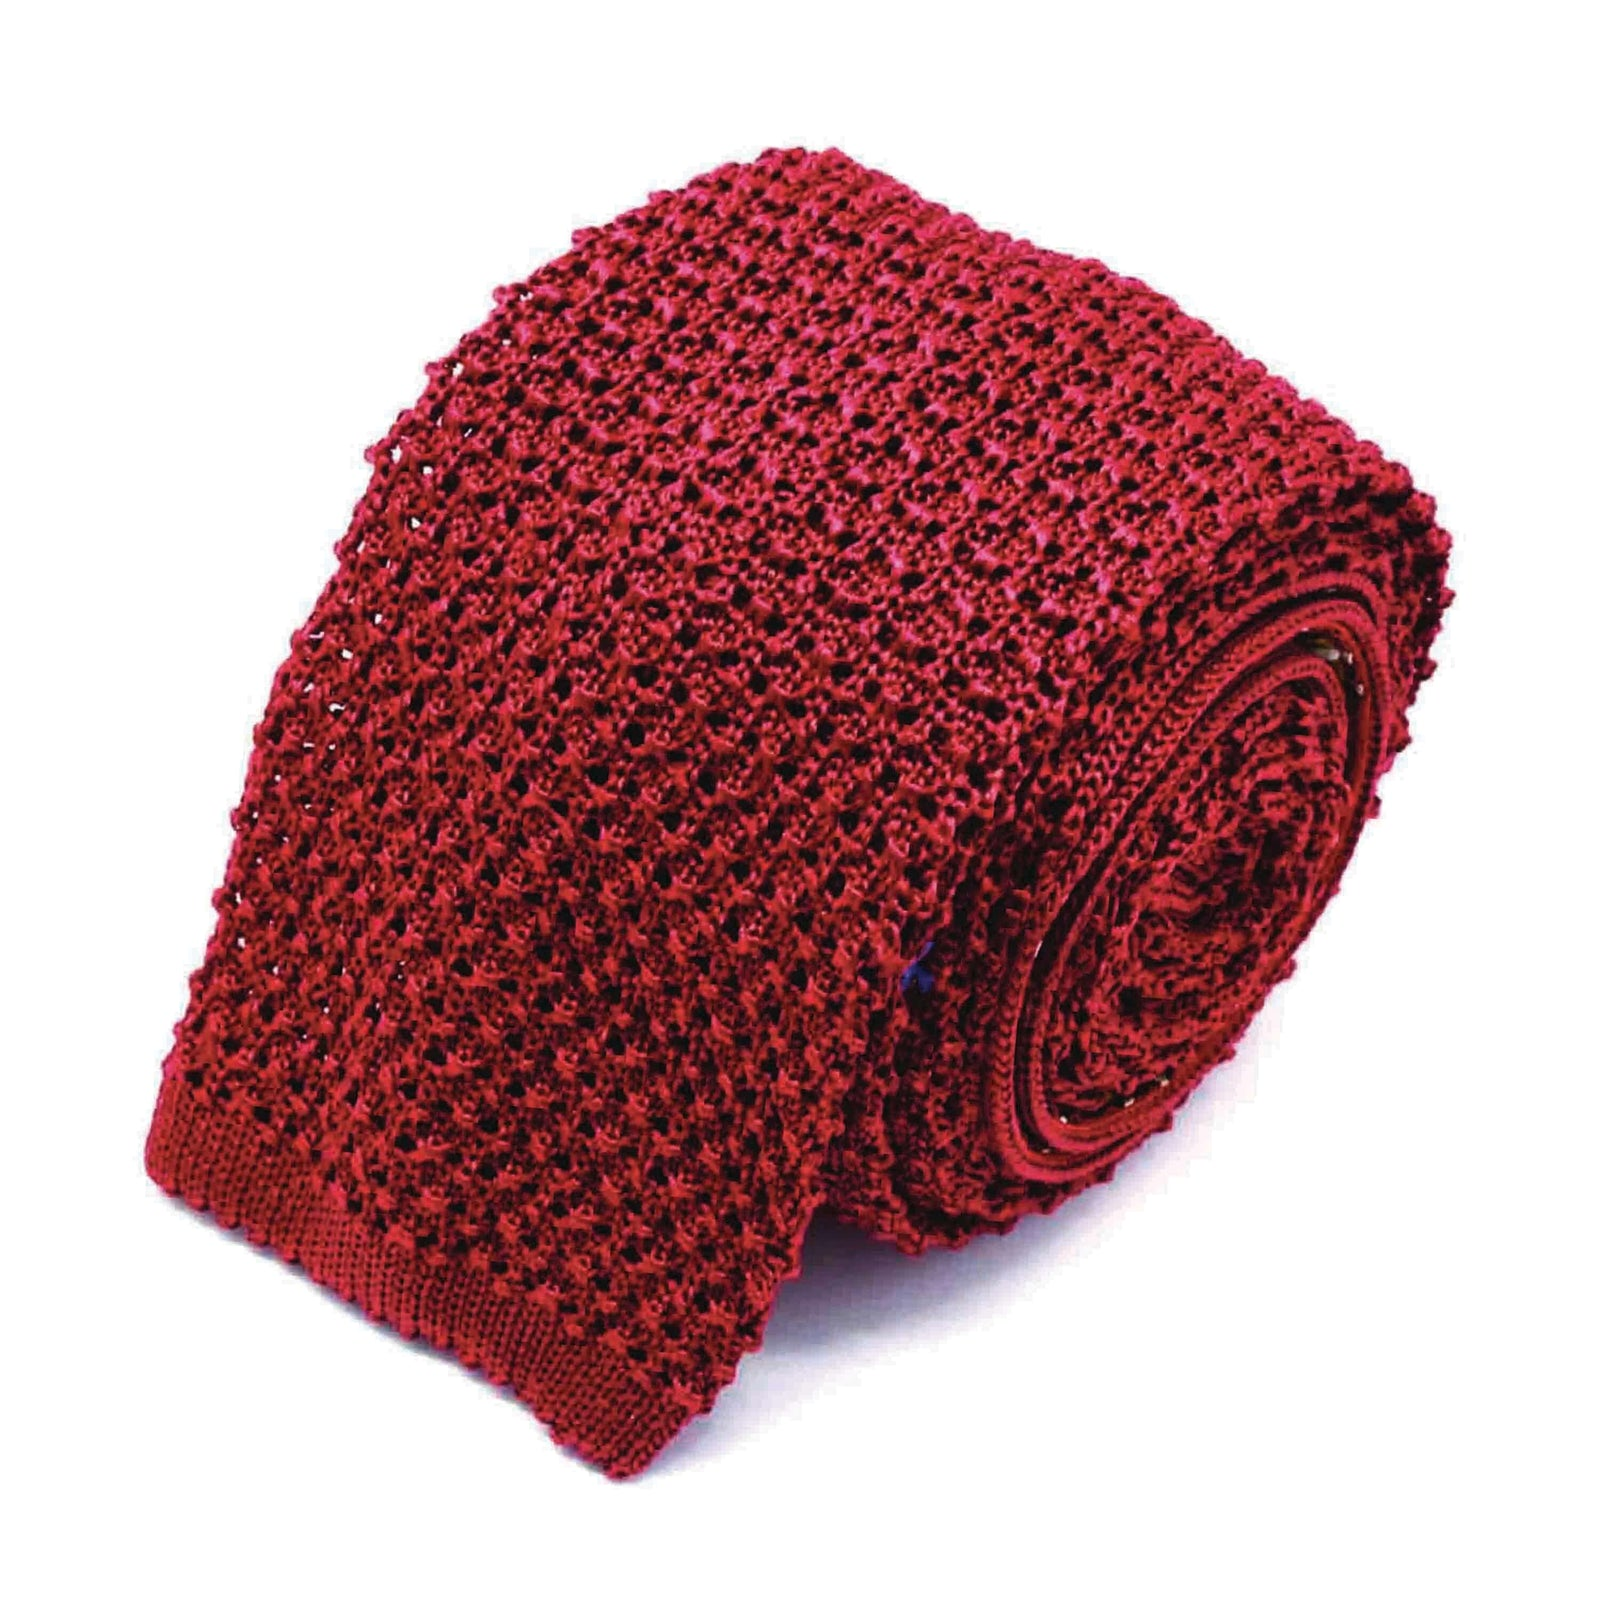 Red crochet knitted tie - serafinesilk